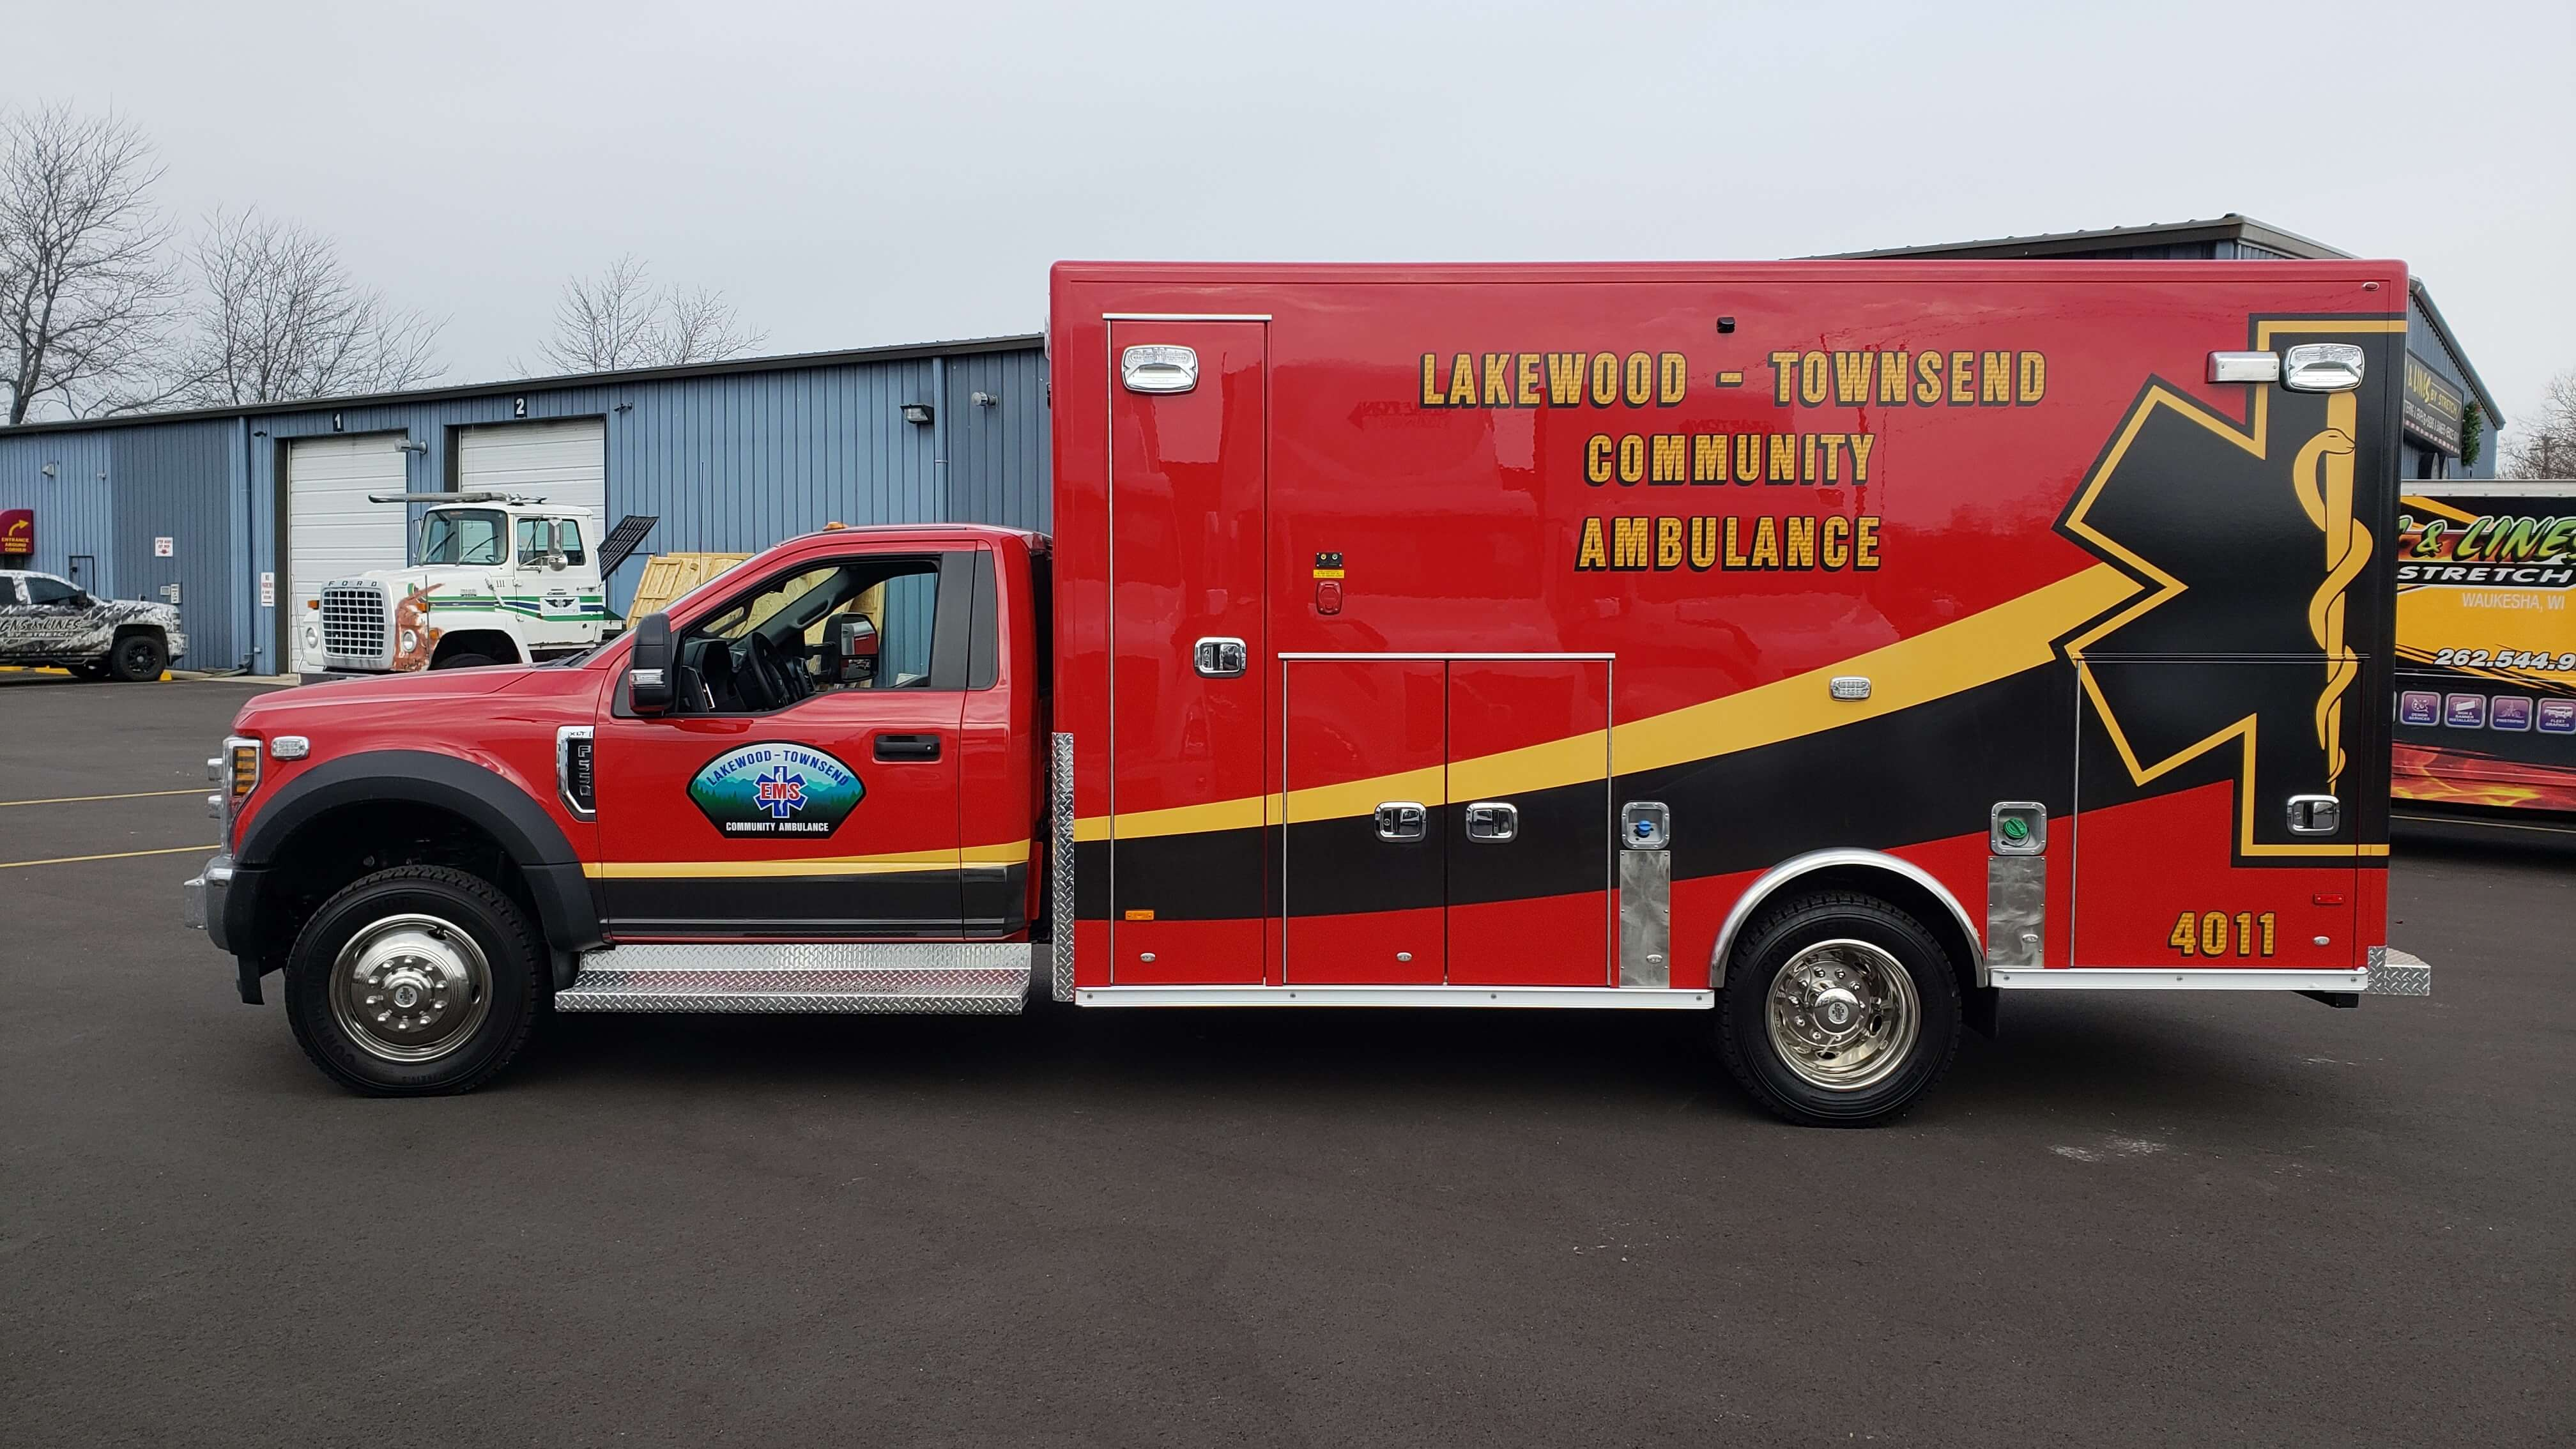 Fire department graphics for Lakewood FD